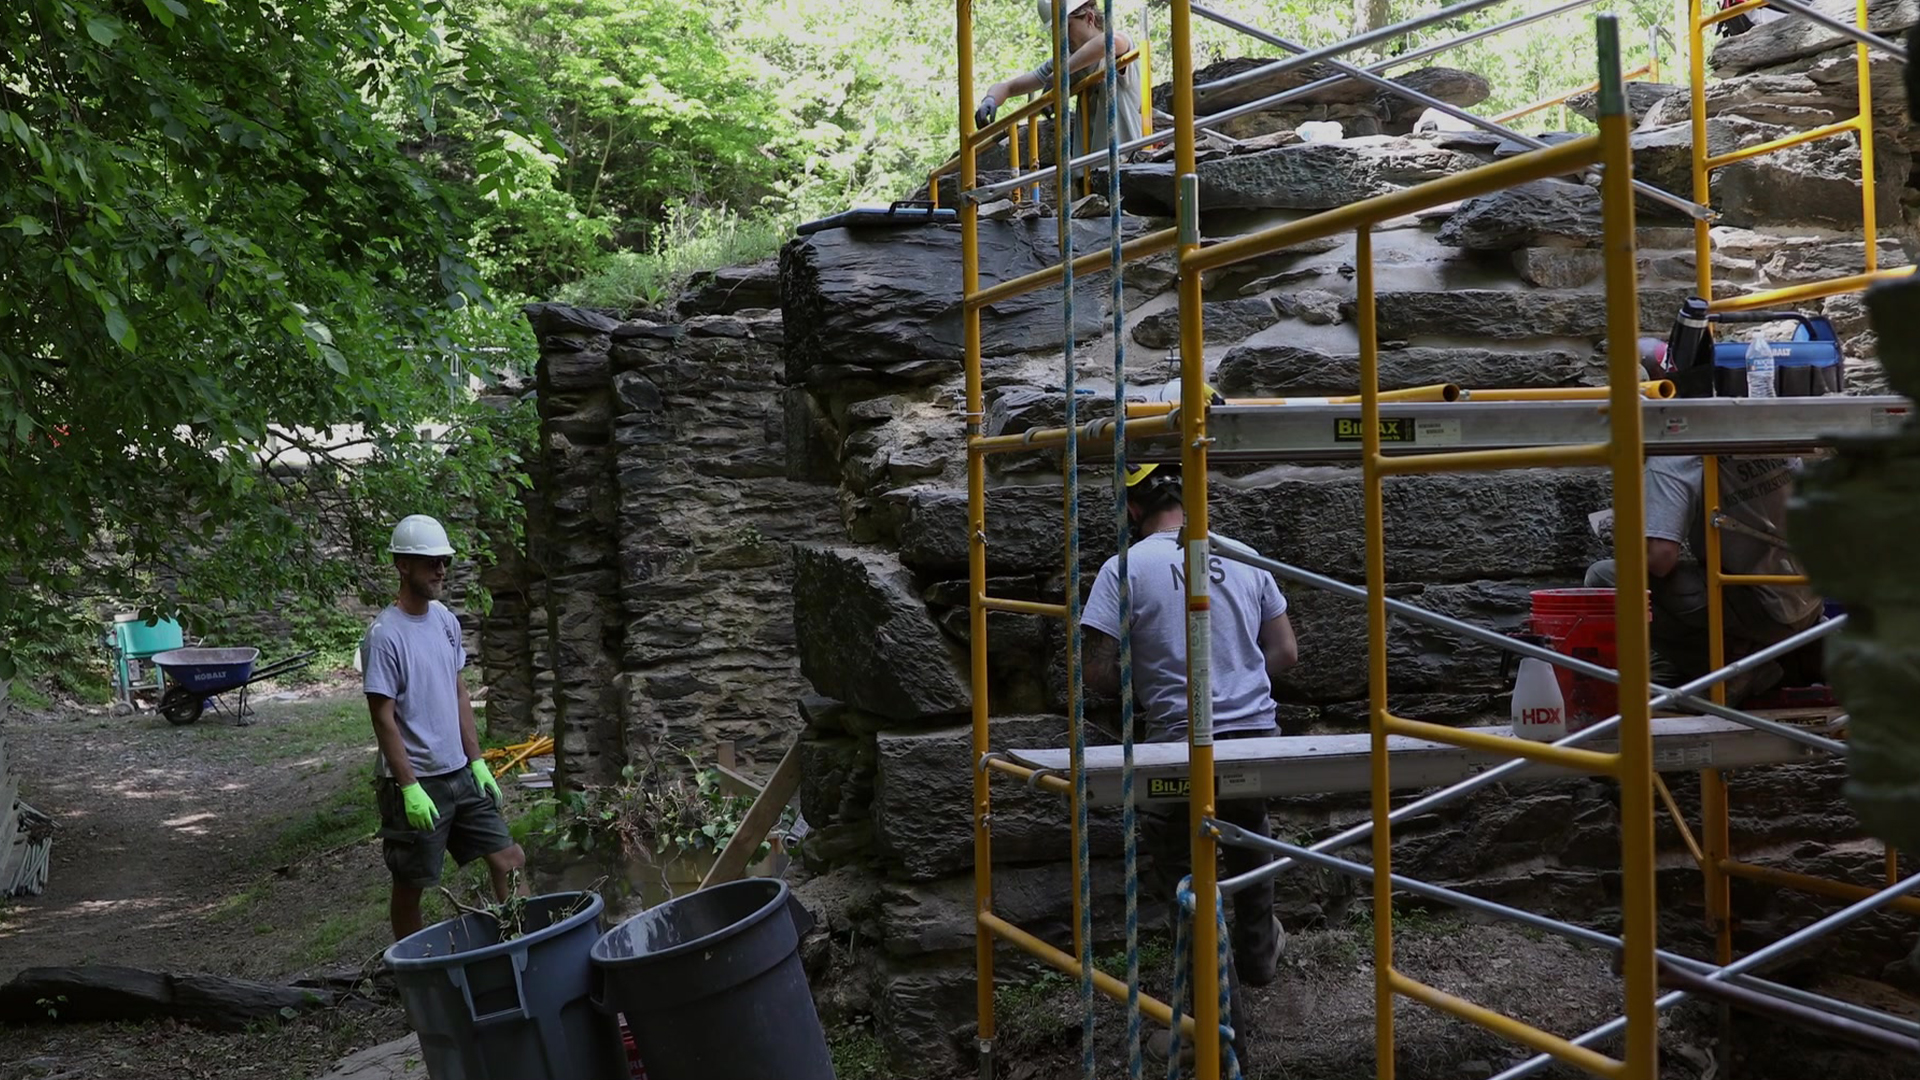 NPS employees skilled in the traditional trades work at the Pulp Mill Ruins in Harpers Ferry, WV